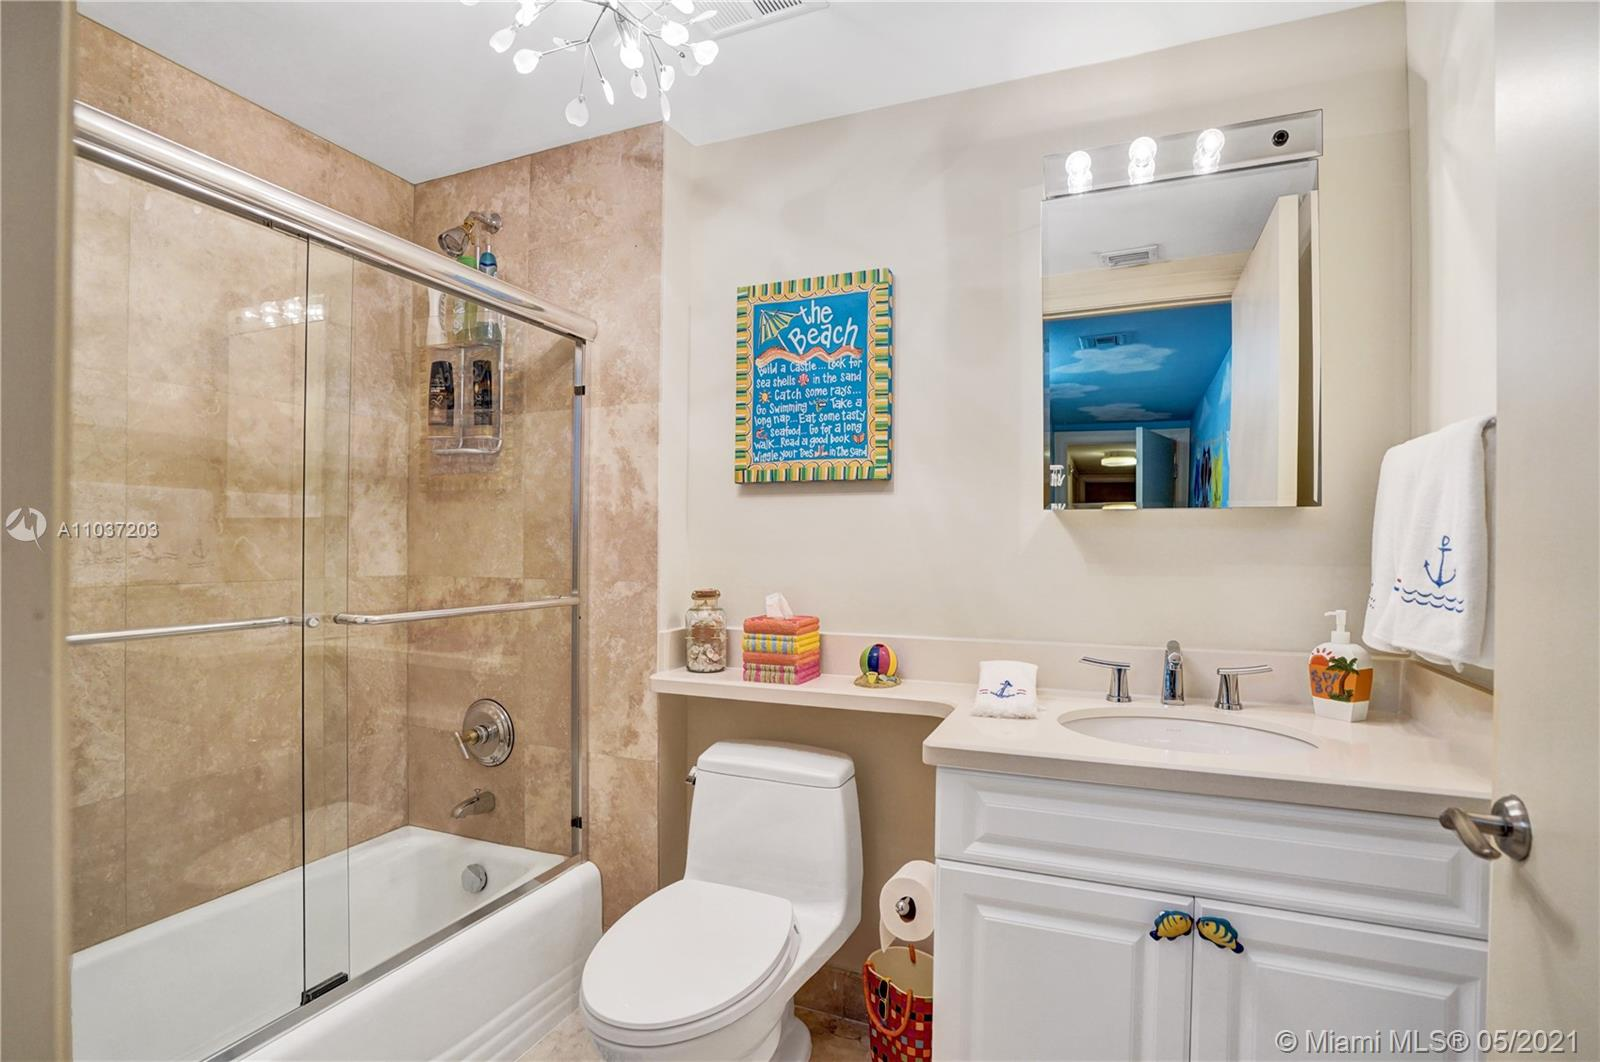 Photo of 20201 Country Club Dr #1006, Aventura, Florida, 33180 - Secoand bedroom with a Caribean feel.